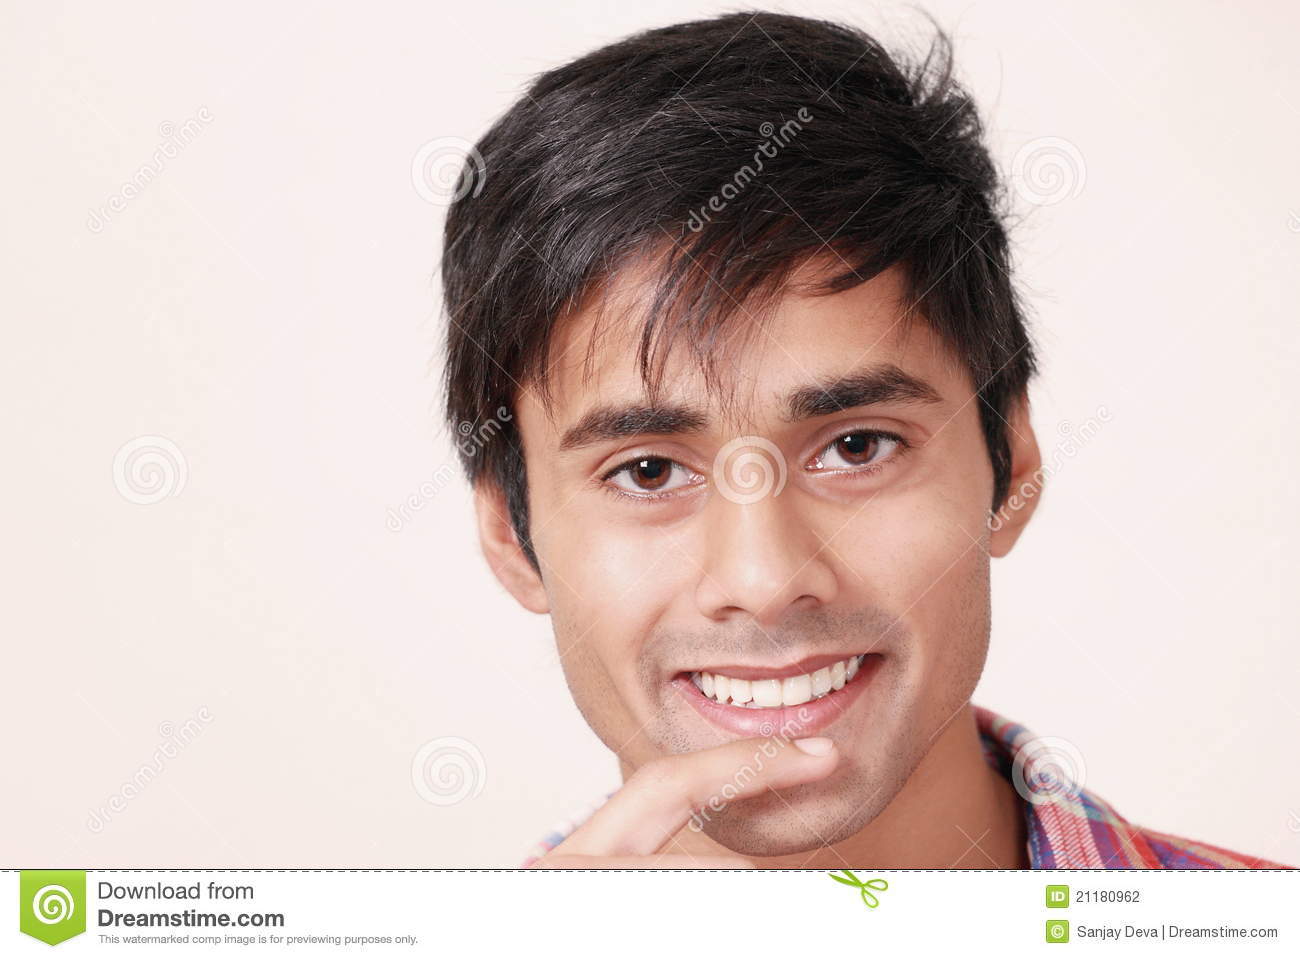 Cute guy grinning